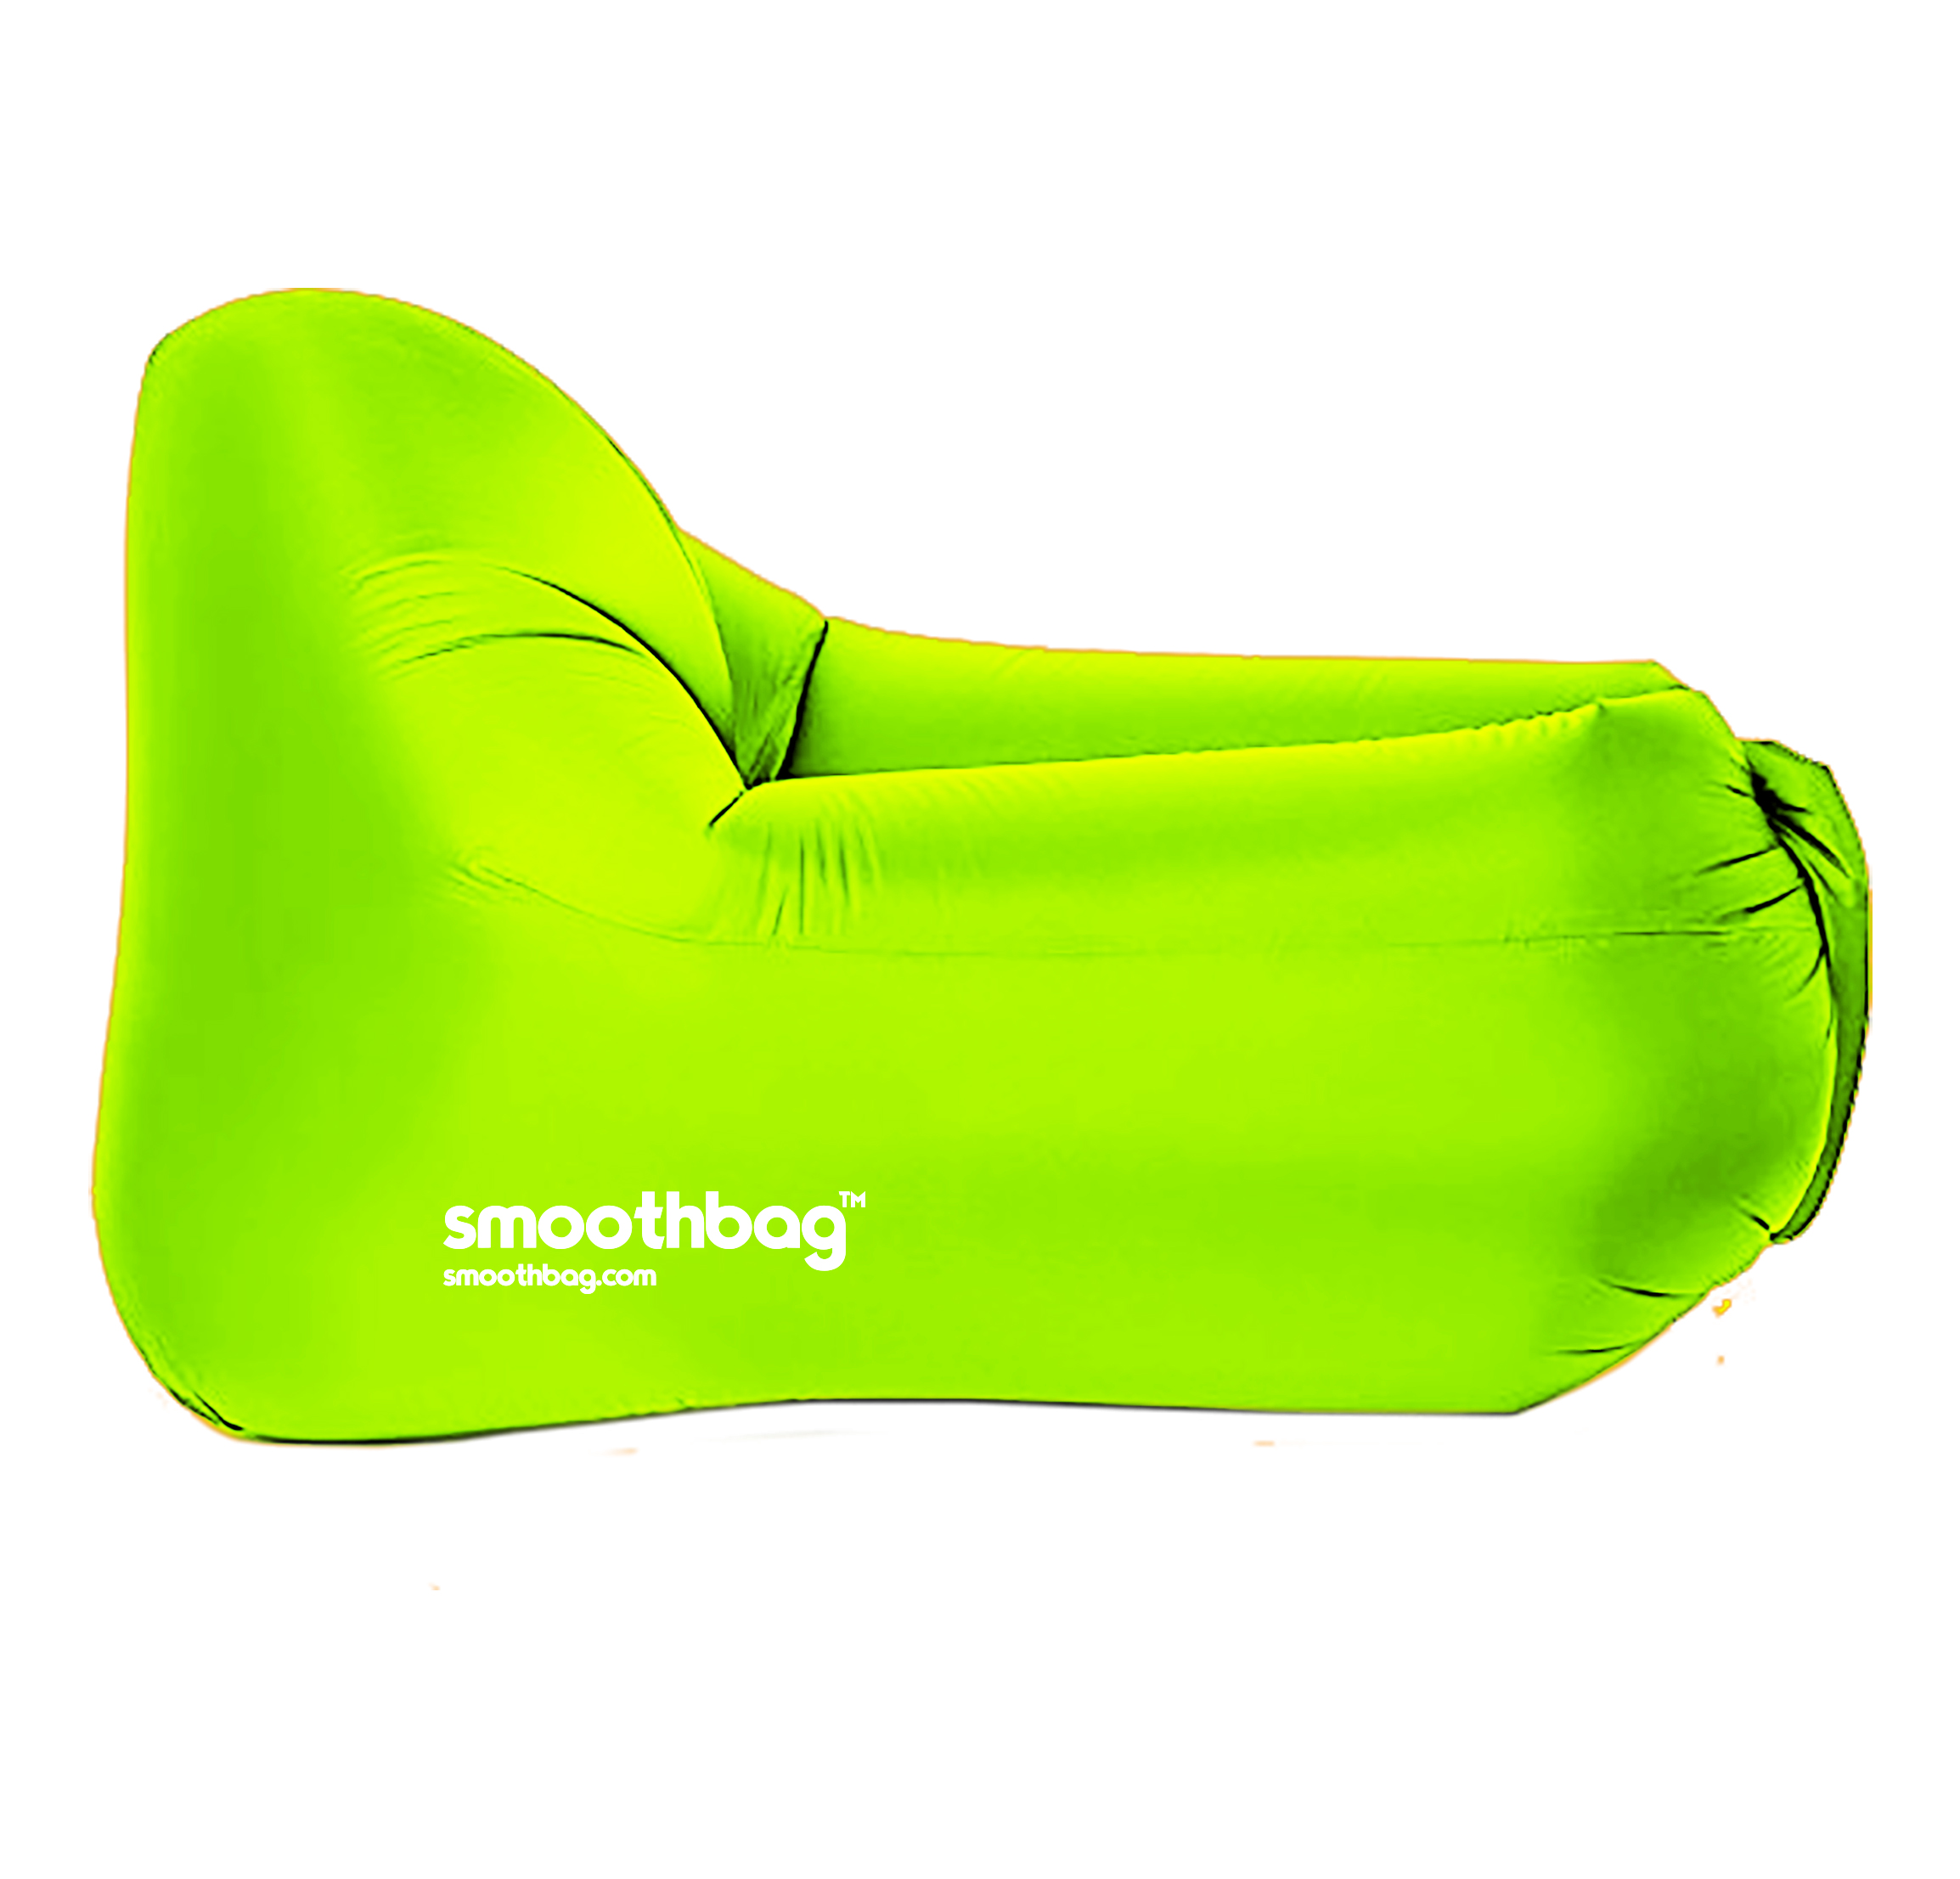 SMOOTHBAG SBCGREEN GREEN  INFLATABLE LOUNGER CHAIR